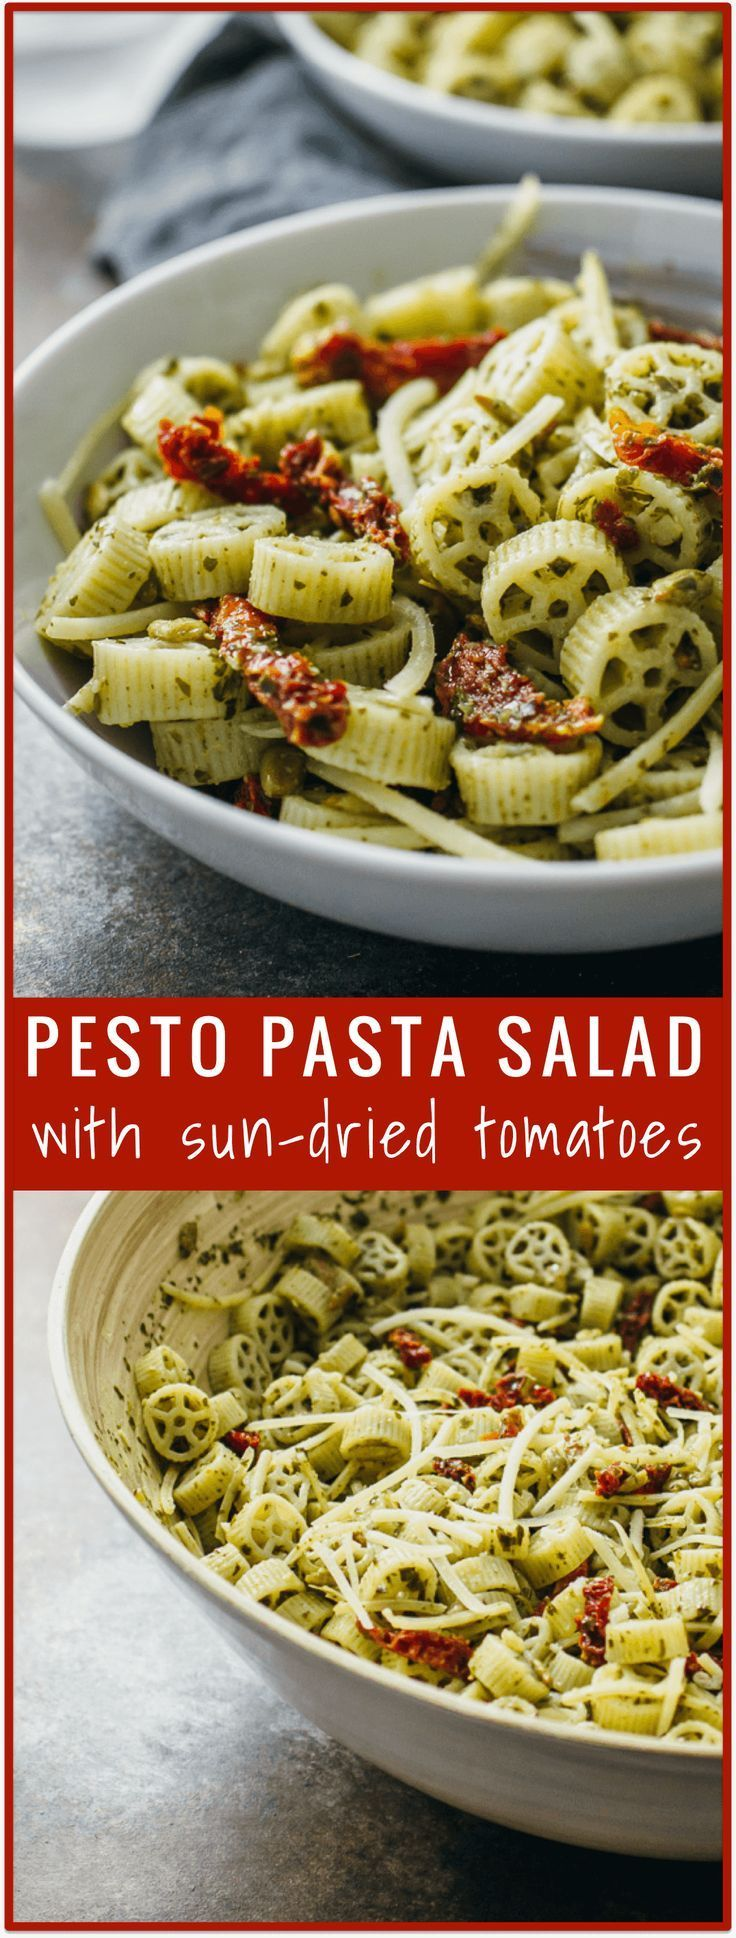 Pesto pasta salad with sun-dried tomatoes - Heres a 15-minute pesto pasta salad to bring to your next event. Its easy to throw together with only 5 ingredients in this recipe: pasta, pesto, sun-dried tomatoes, parmesan cheese, and sunflower seeds. This